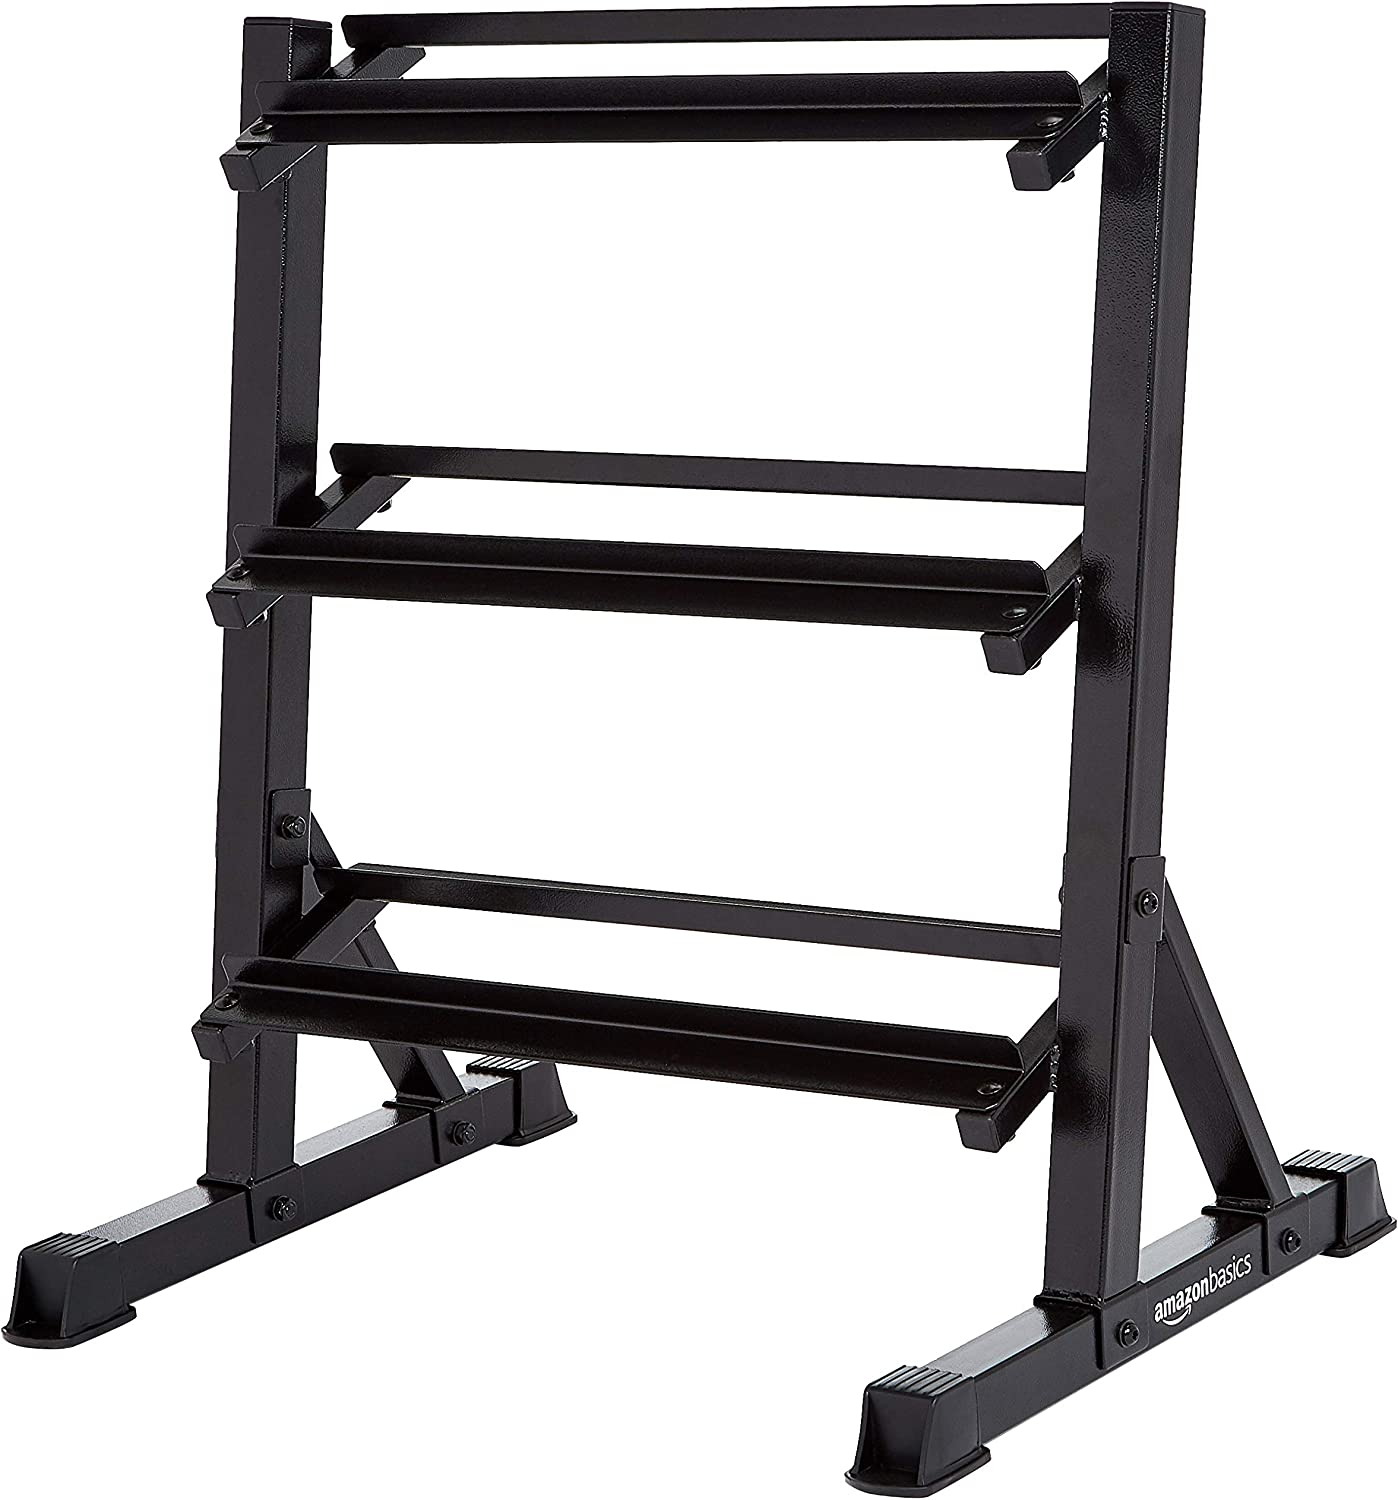 AmazonBasics 3 Tier Dumbbell Weight Rack Black Iron Indoor Home Workout Fitness